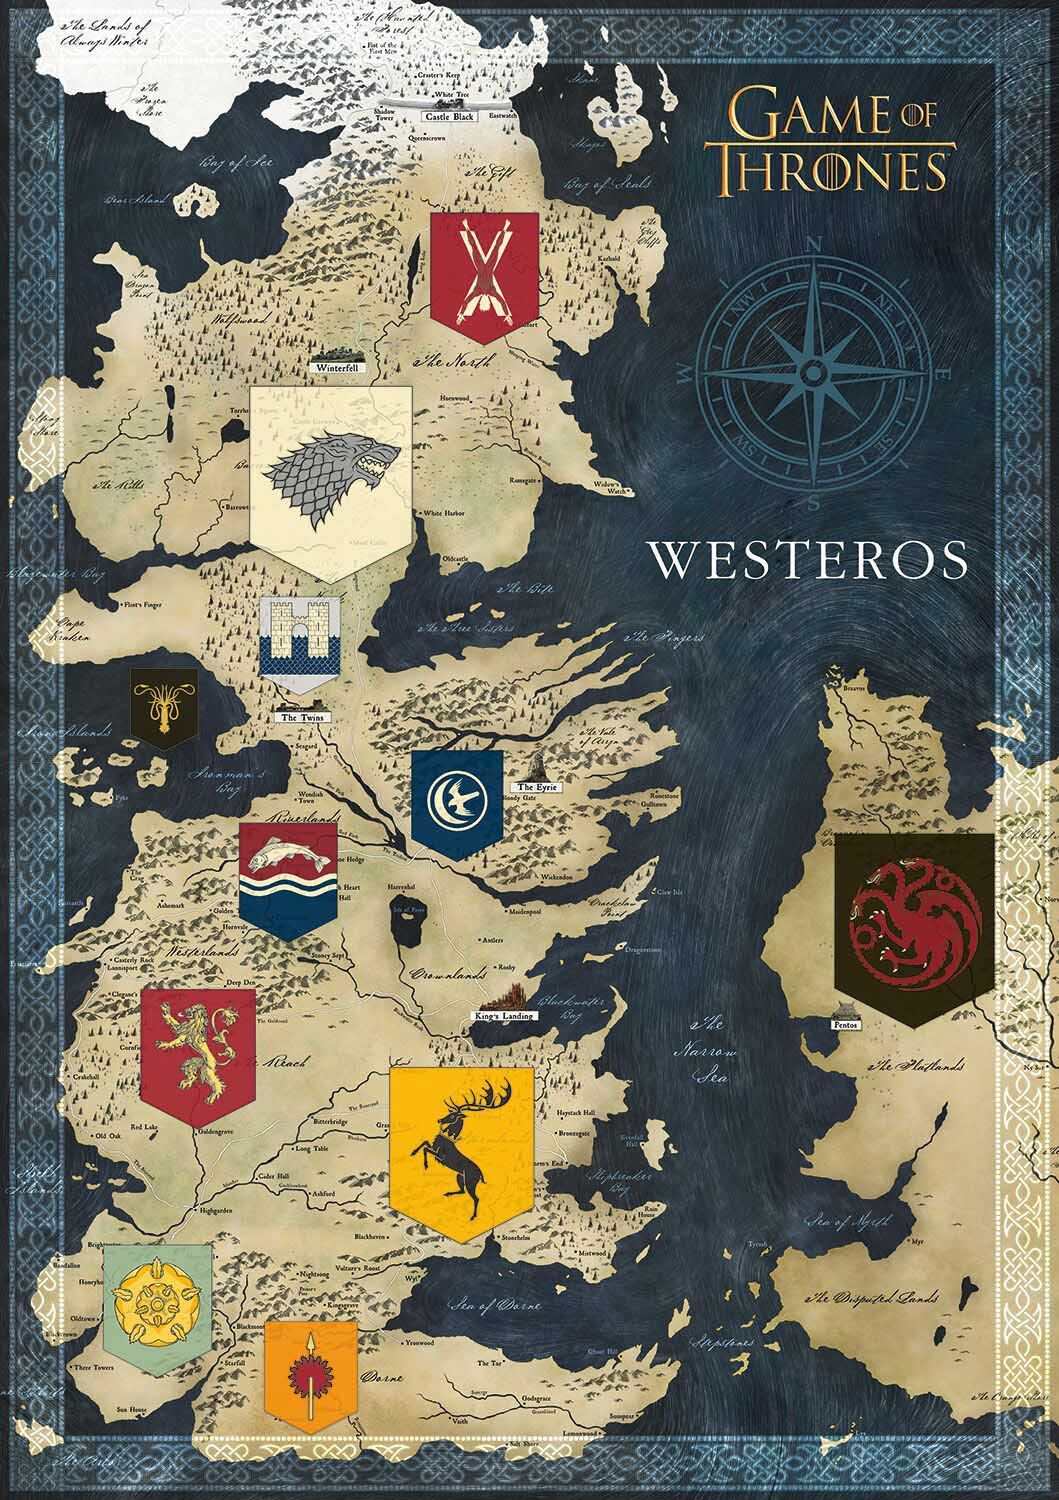 Game of Thrones - Map of Westeros Game Of Thrones D Map Westeros Puzzle on crown lands map game of thrones, detailed map of westeros game of thrones, google map game of thrones,